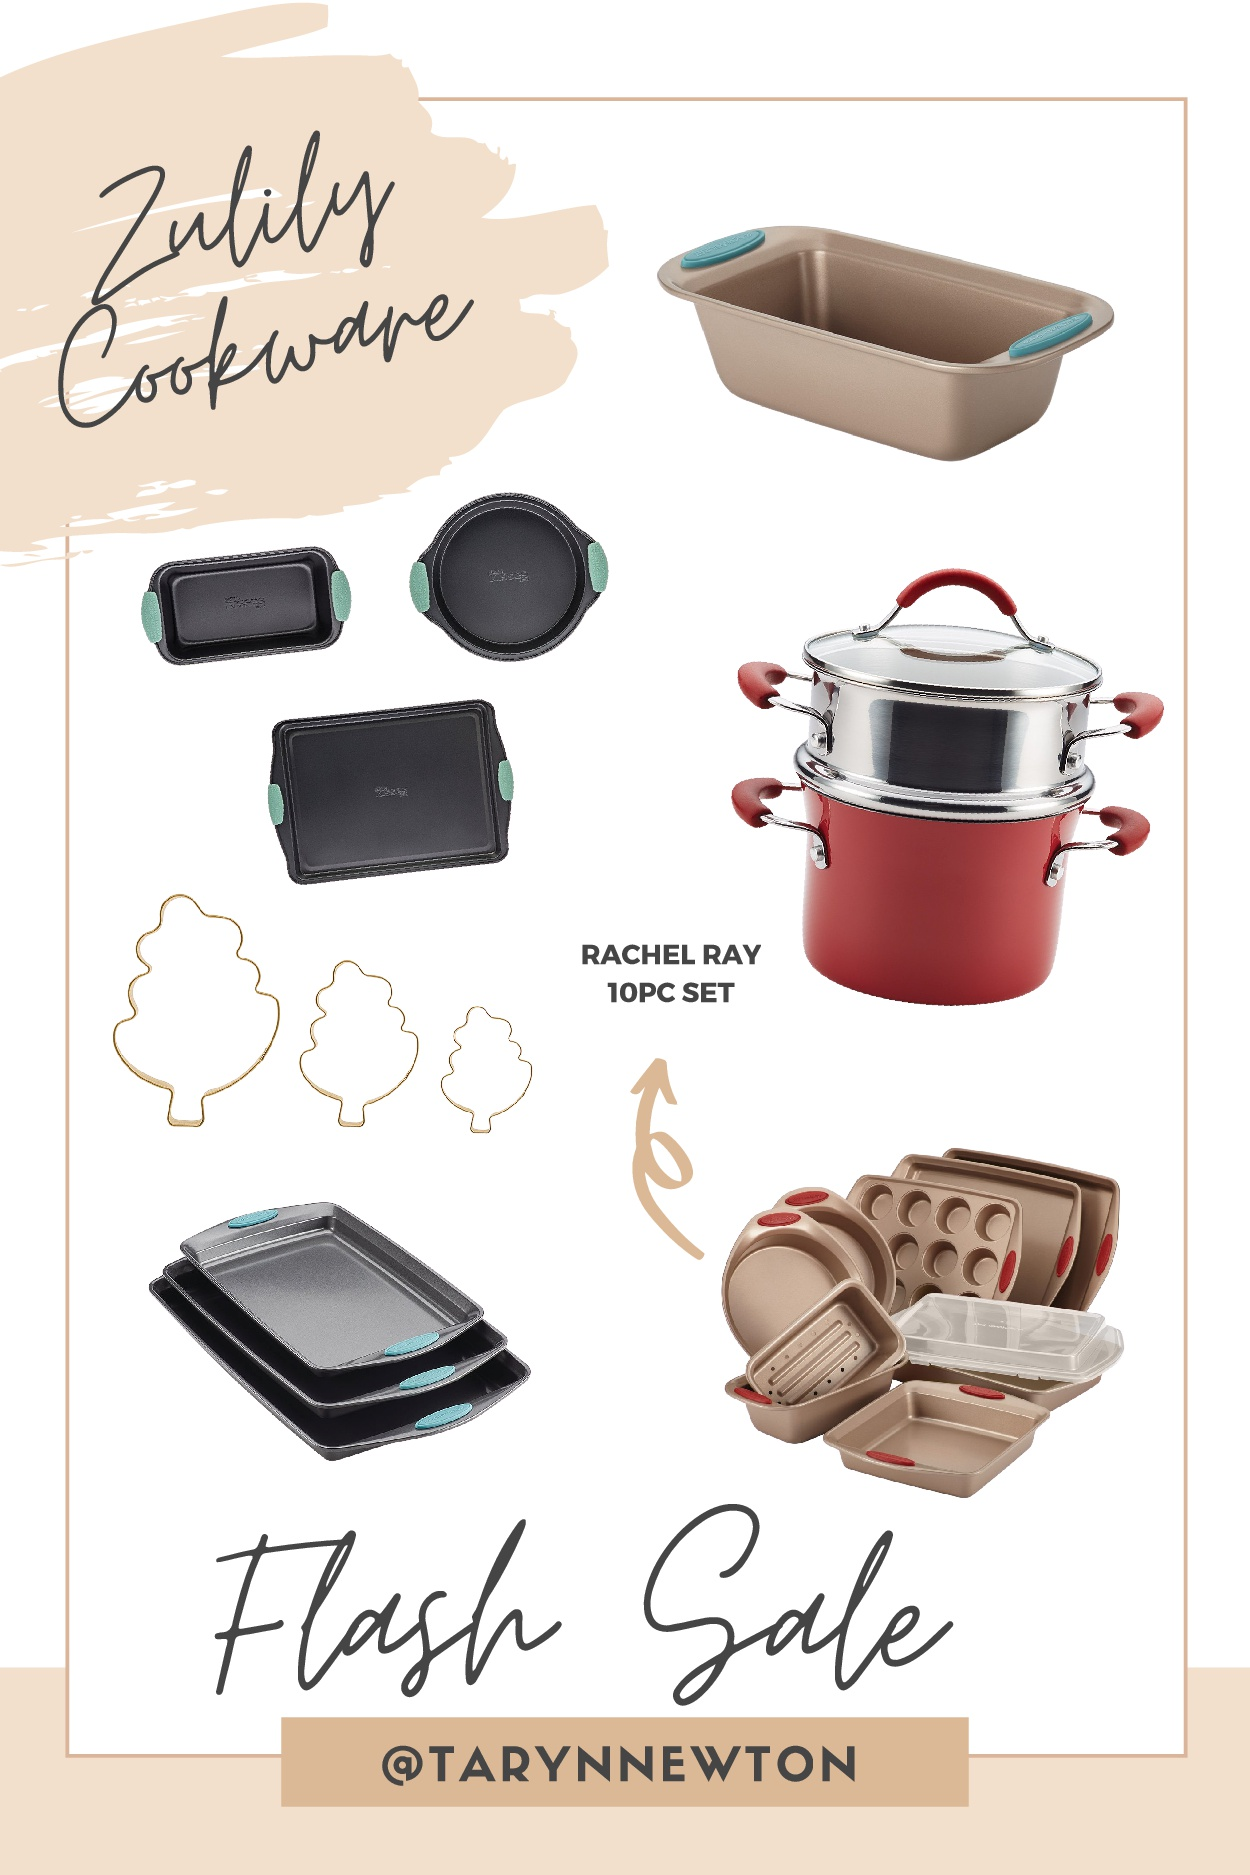 Christmas Gift Guide by poplar Dallas life and style blog, Glamorous Versatility: collage image of baking pans, baking sheets, and pots.